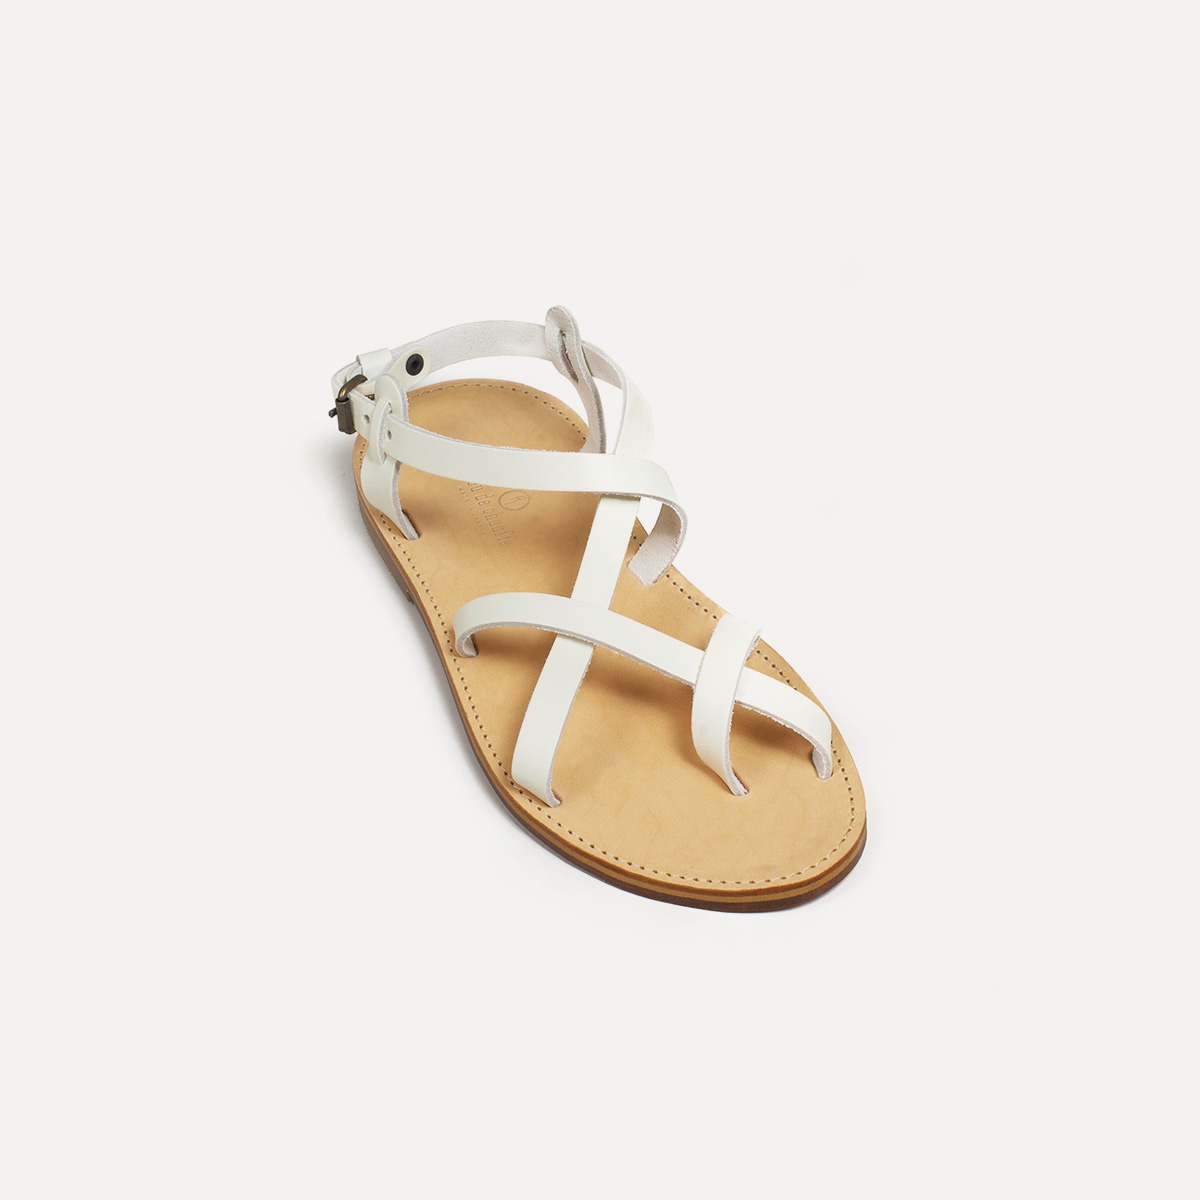 Nara leather sandals - White (image n°2)